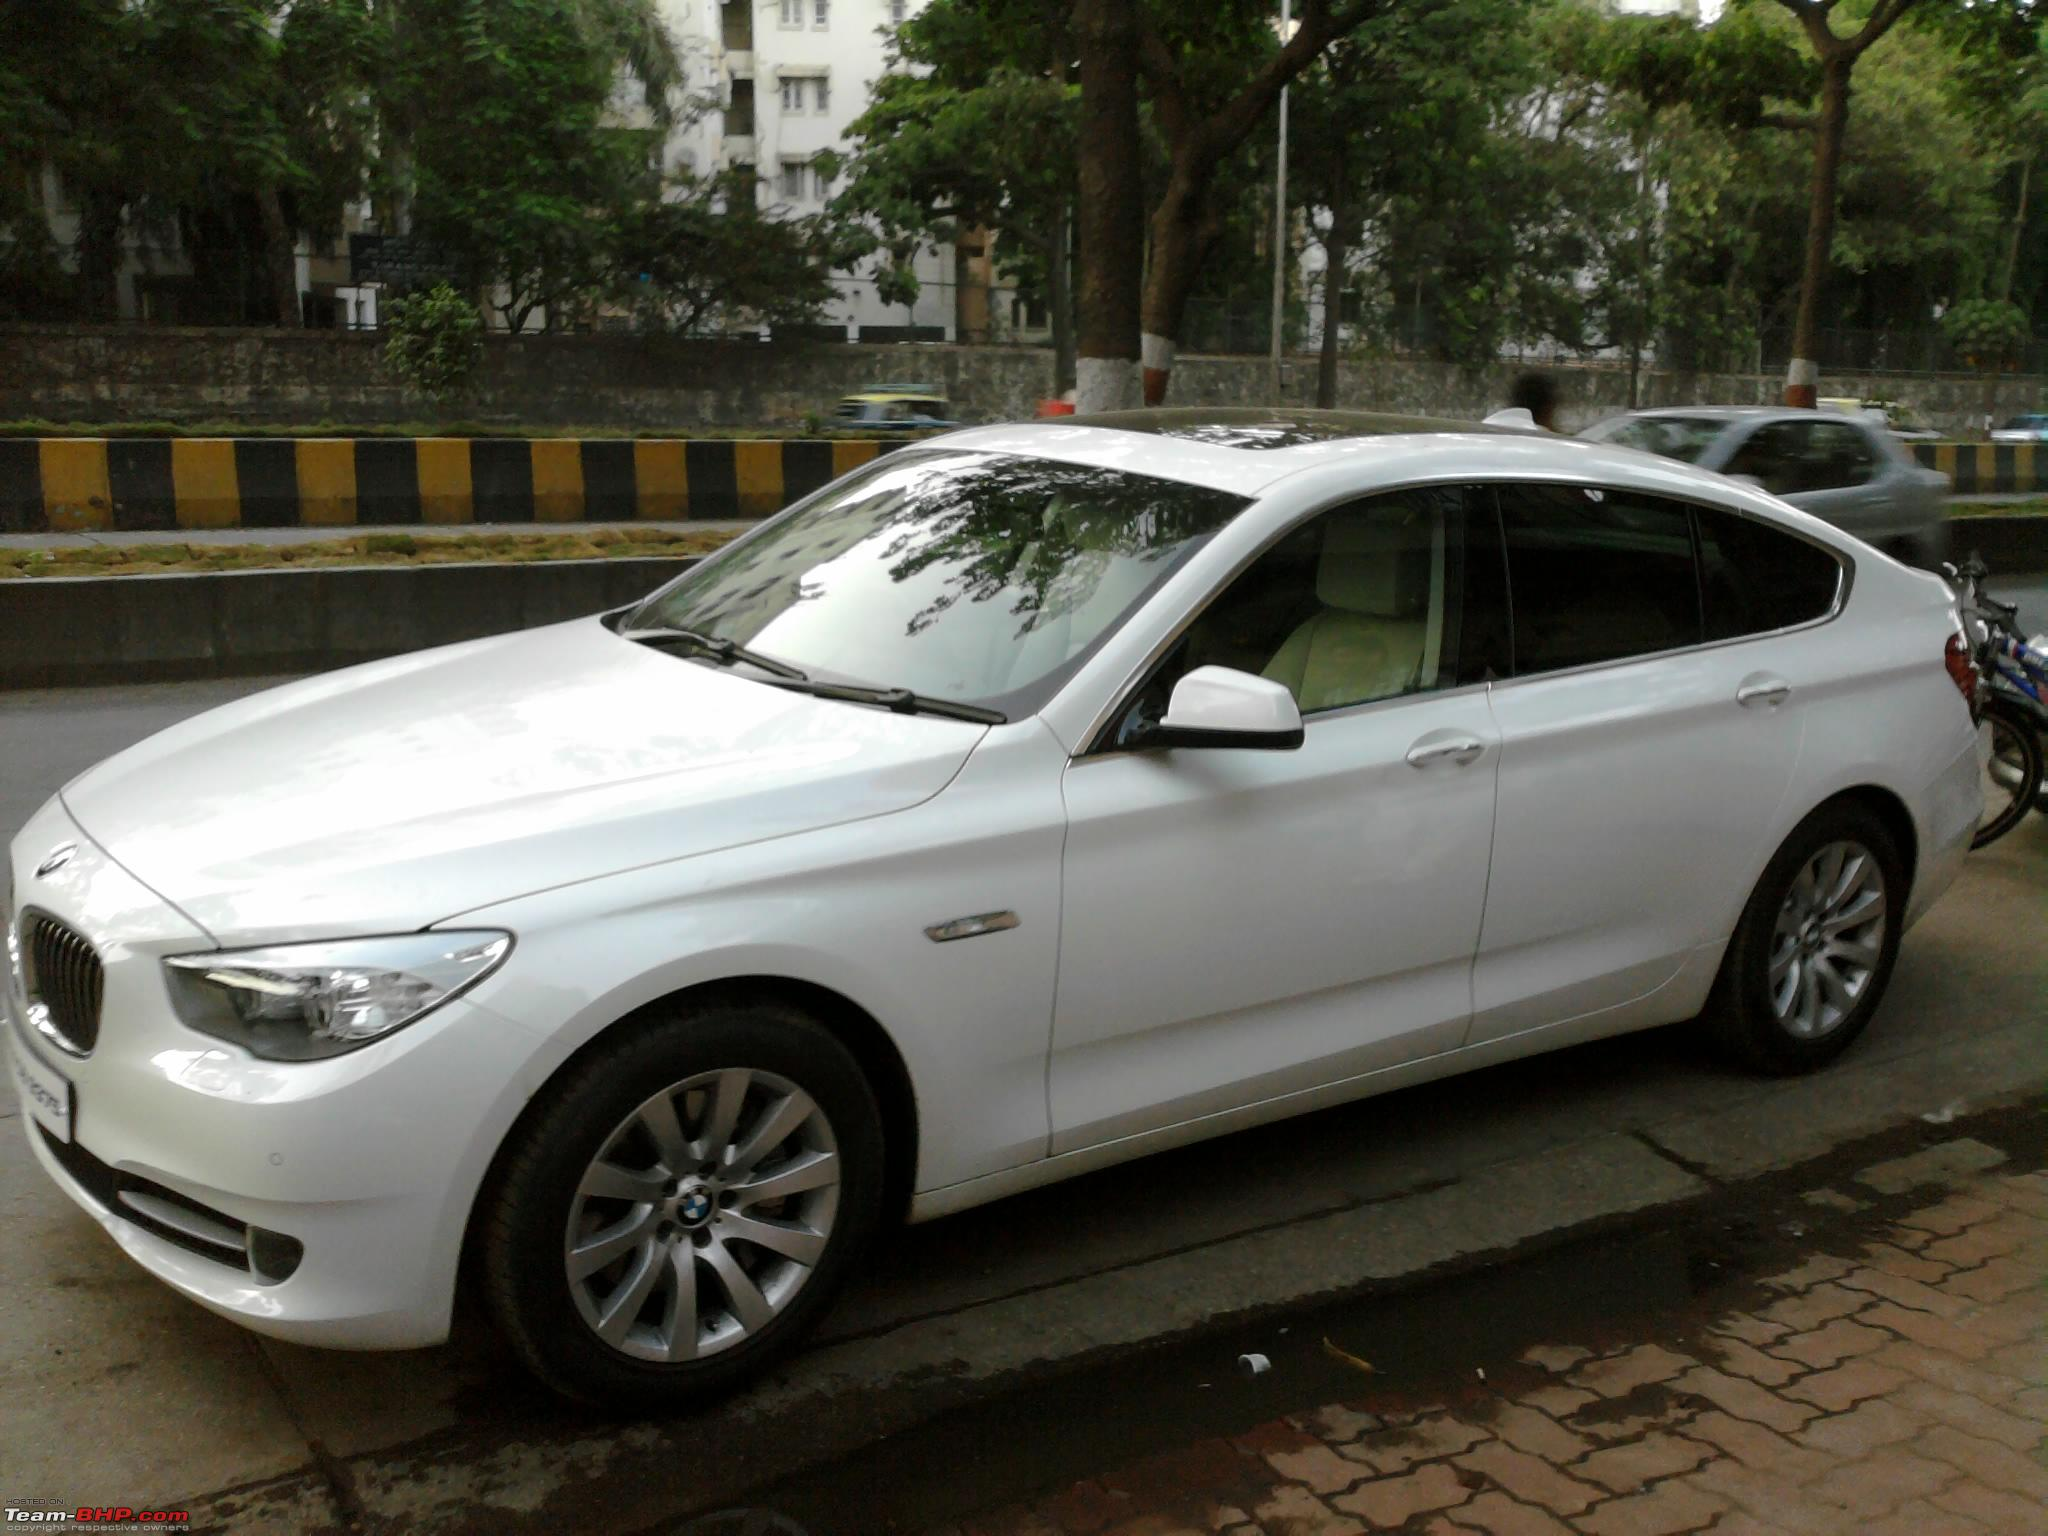 Spotted Bmw 5 Series Gt In Mumbai Photo0005 Jpg